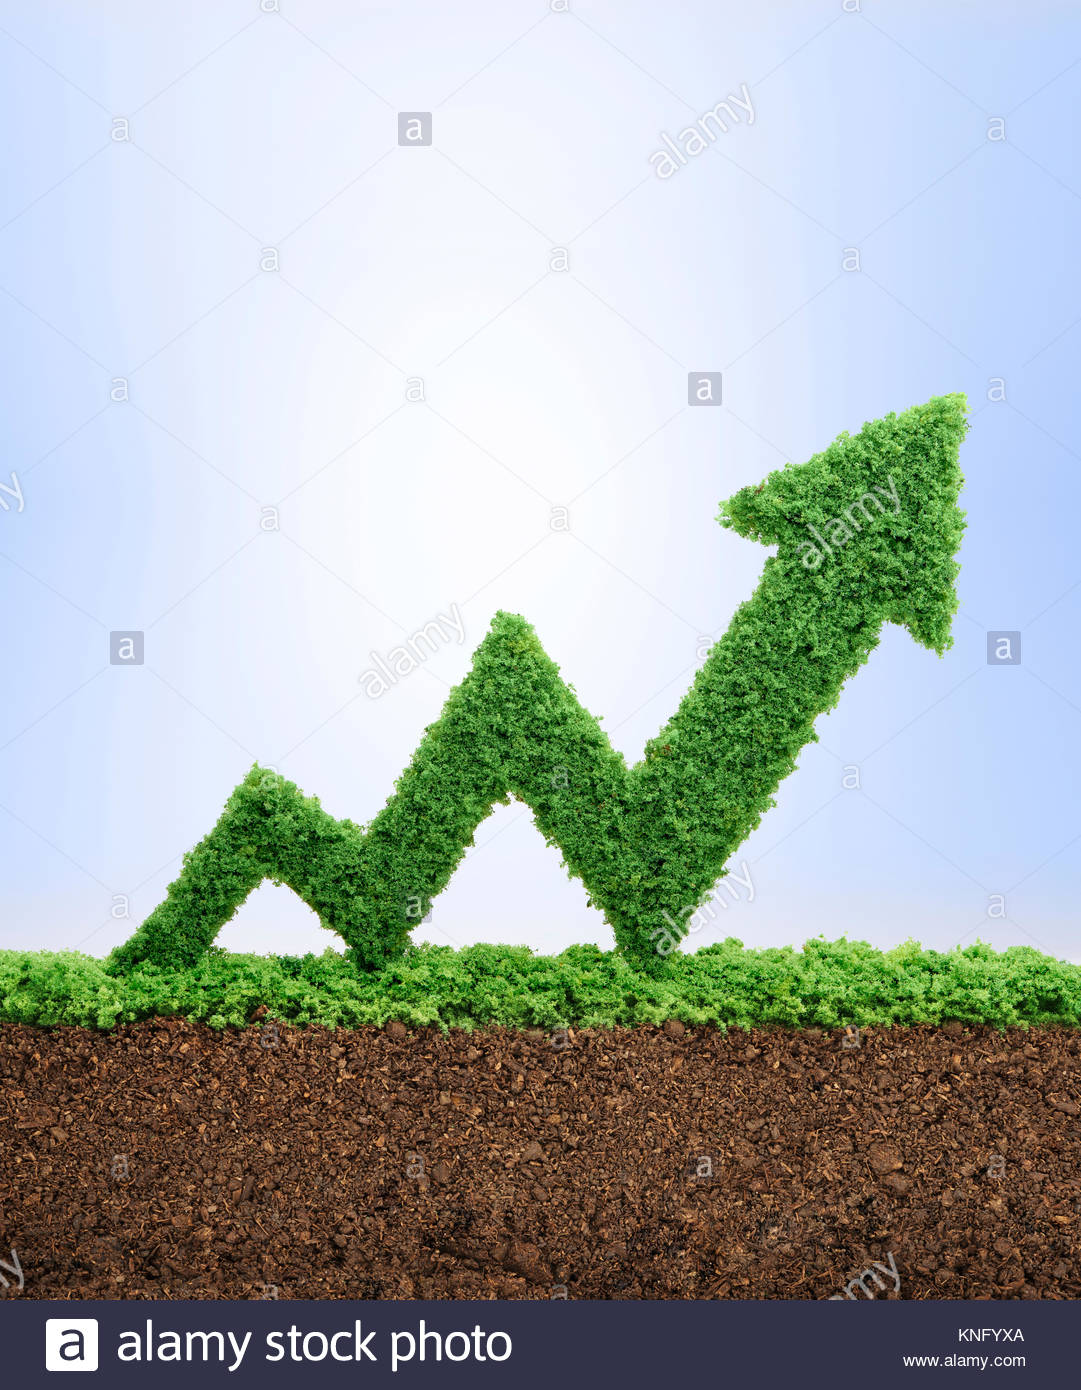 Grass growing in the shape of an arrow graph, symbolising the care and dedication needed for progress, success and - Stock Image